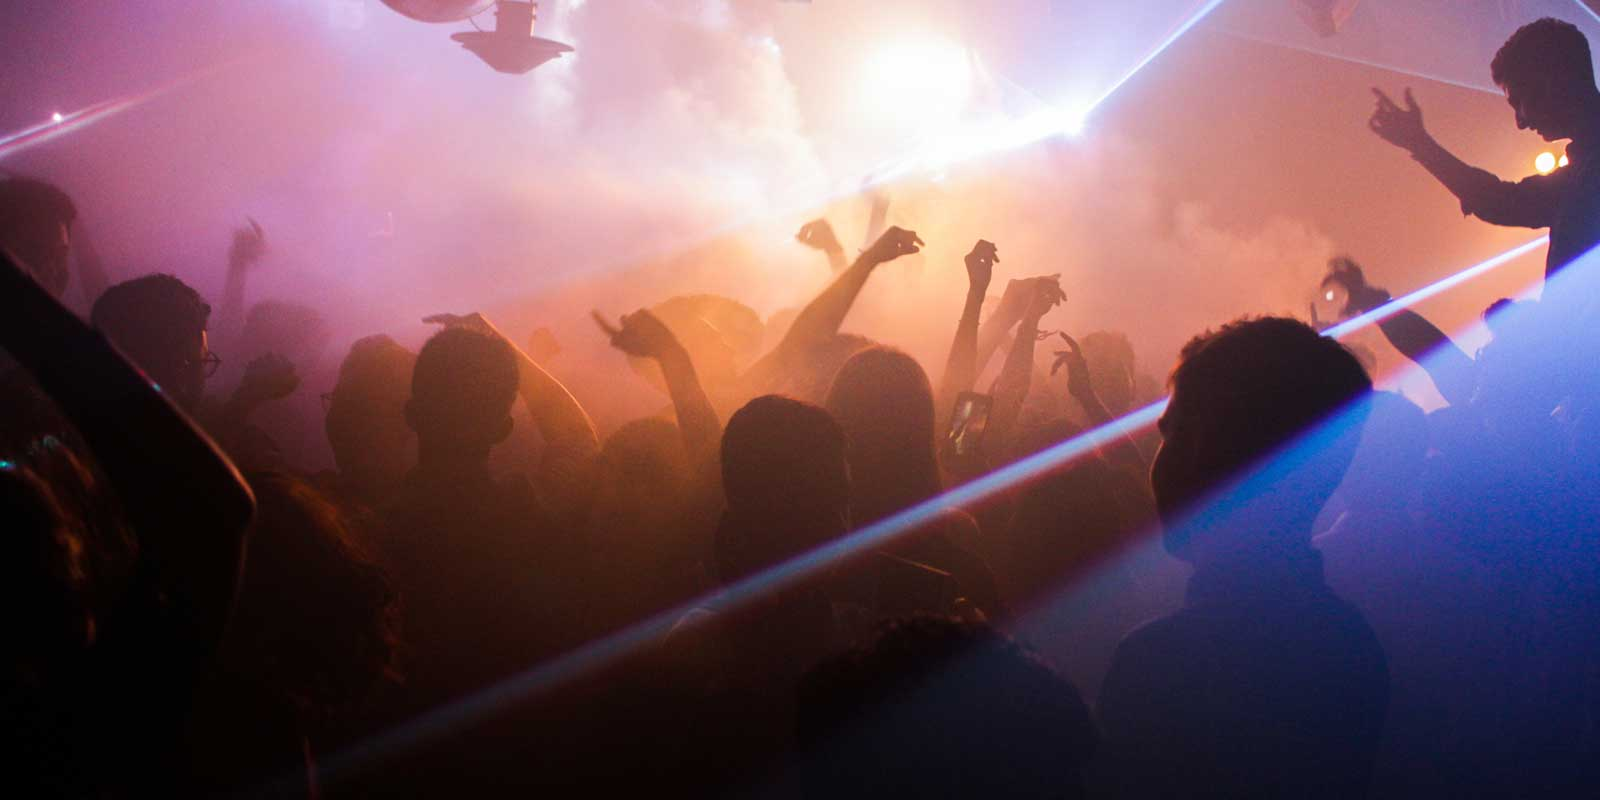 Photo inside a nightclub with silhouettes of dancing people and flashing lights.